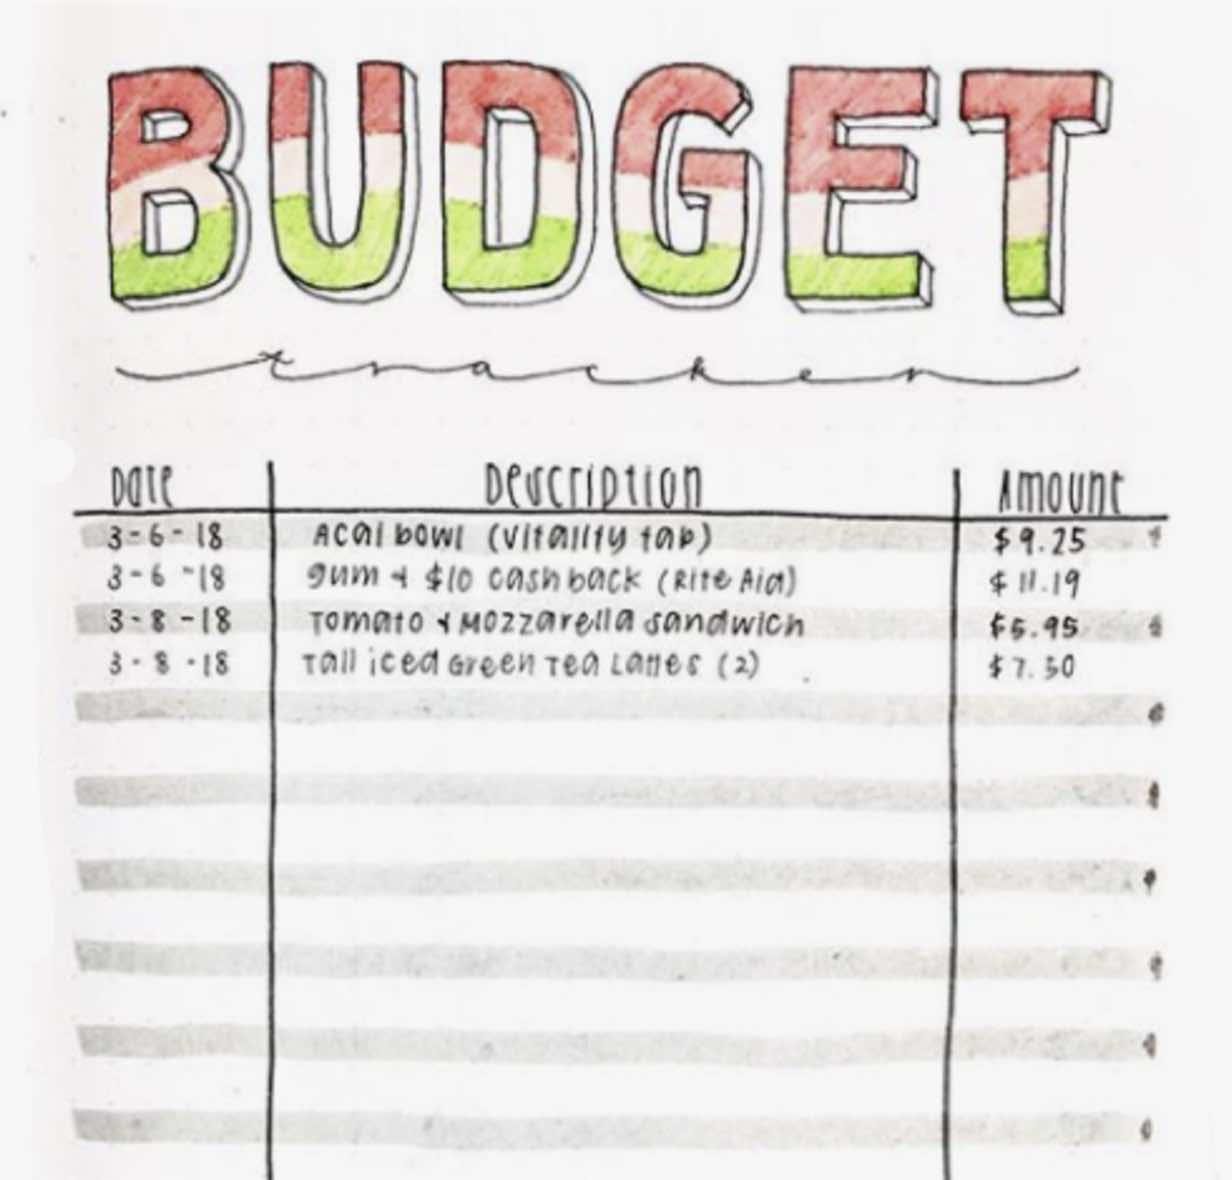 bullet journaling with budget